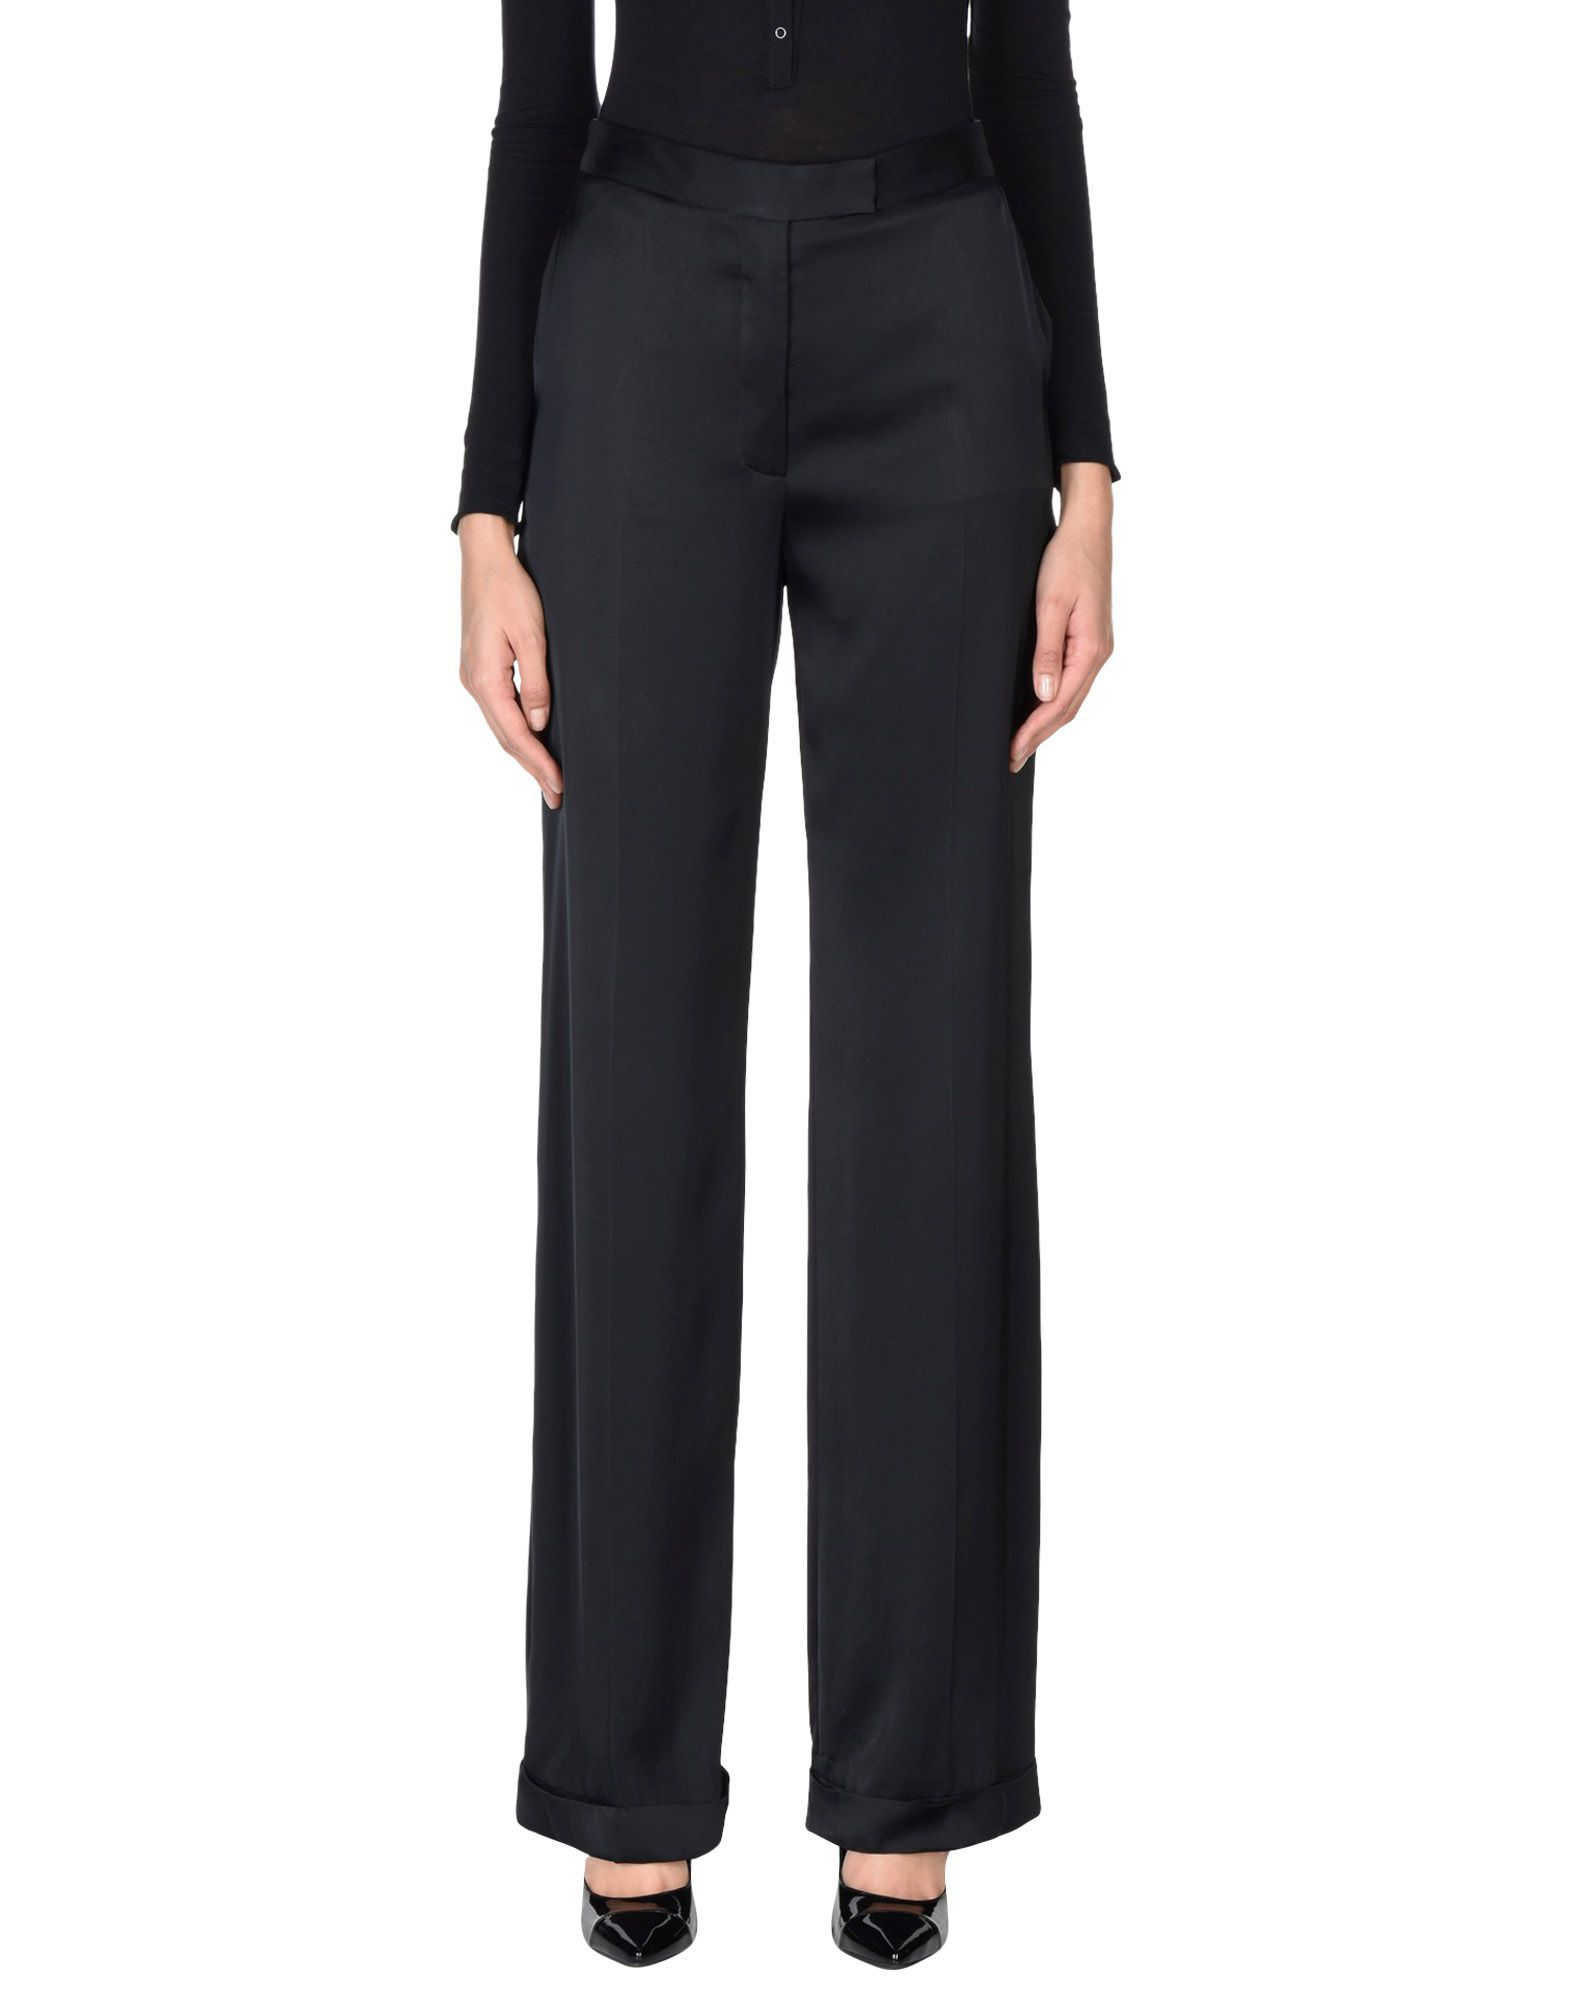 Stella McCartney Black High Waisted Trousers